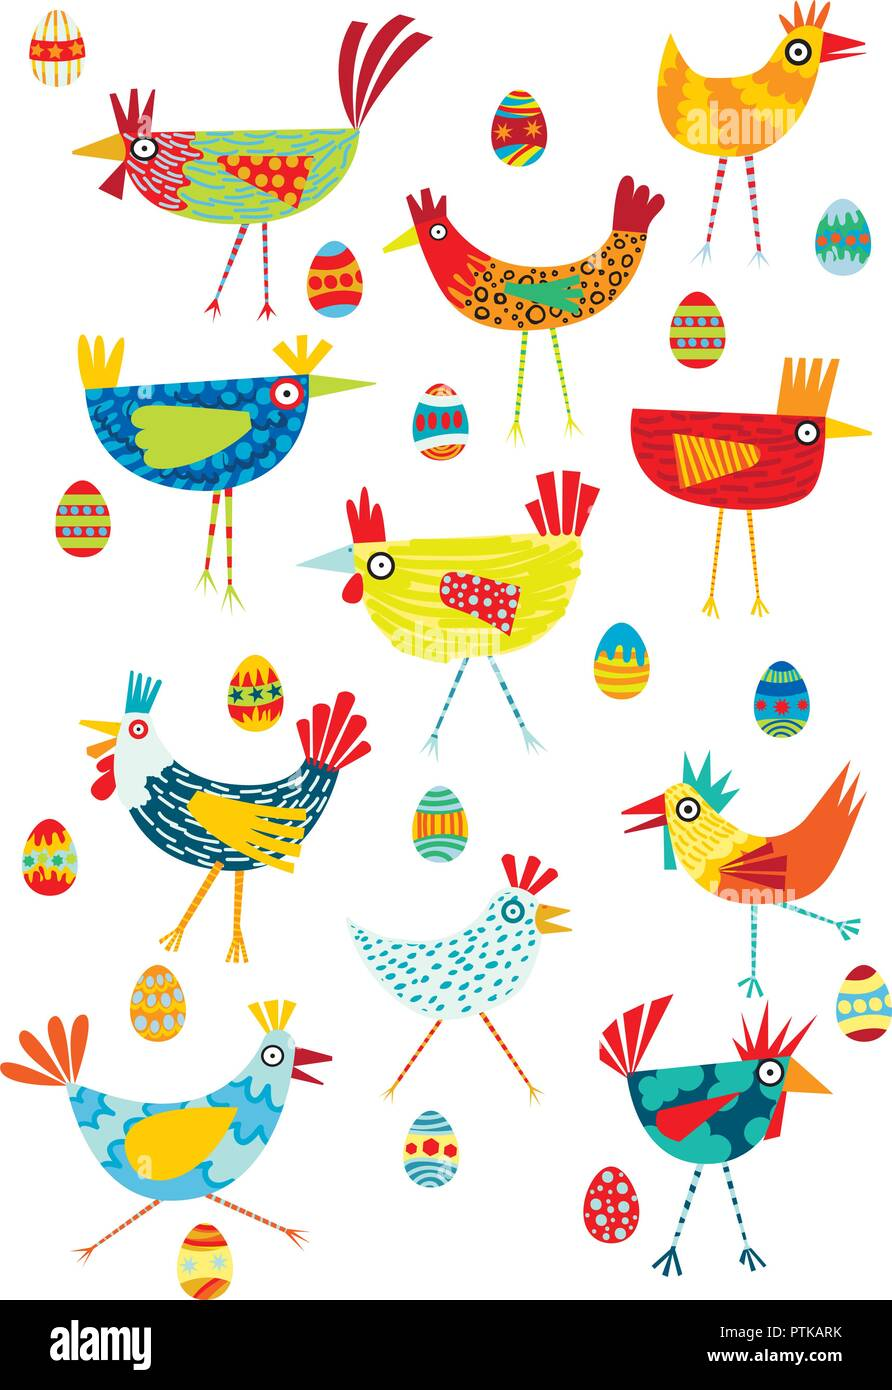 Colorful funky chickens illustration on a white background - Stock Image